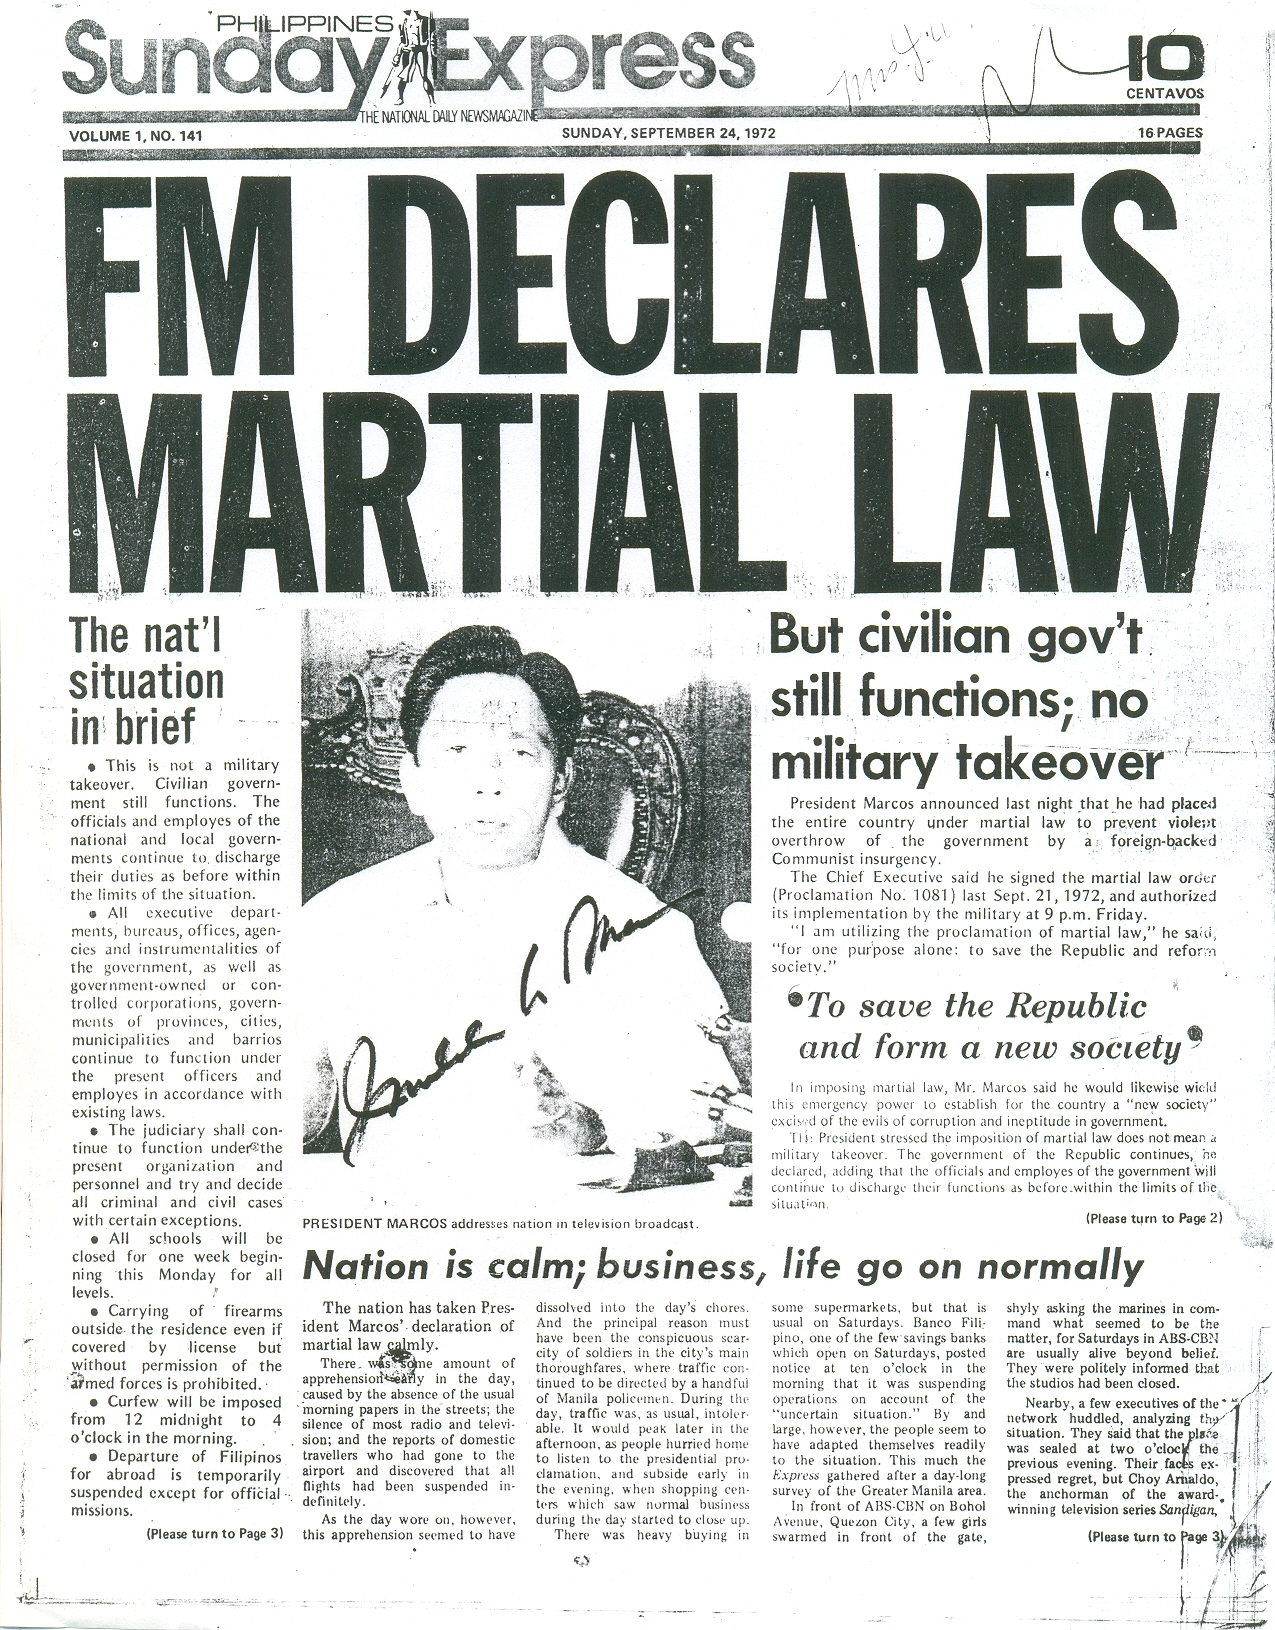 Philippines media and the impact of the Martial Law period